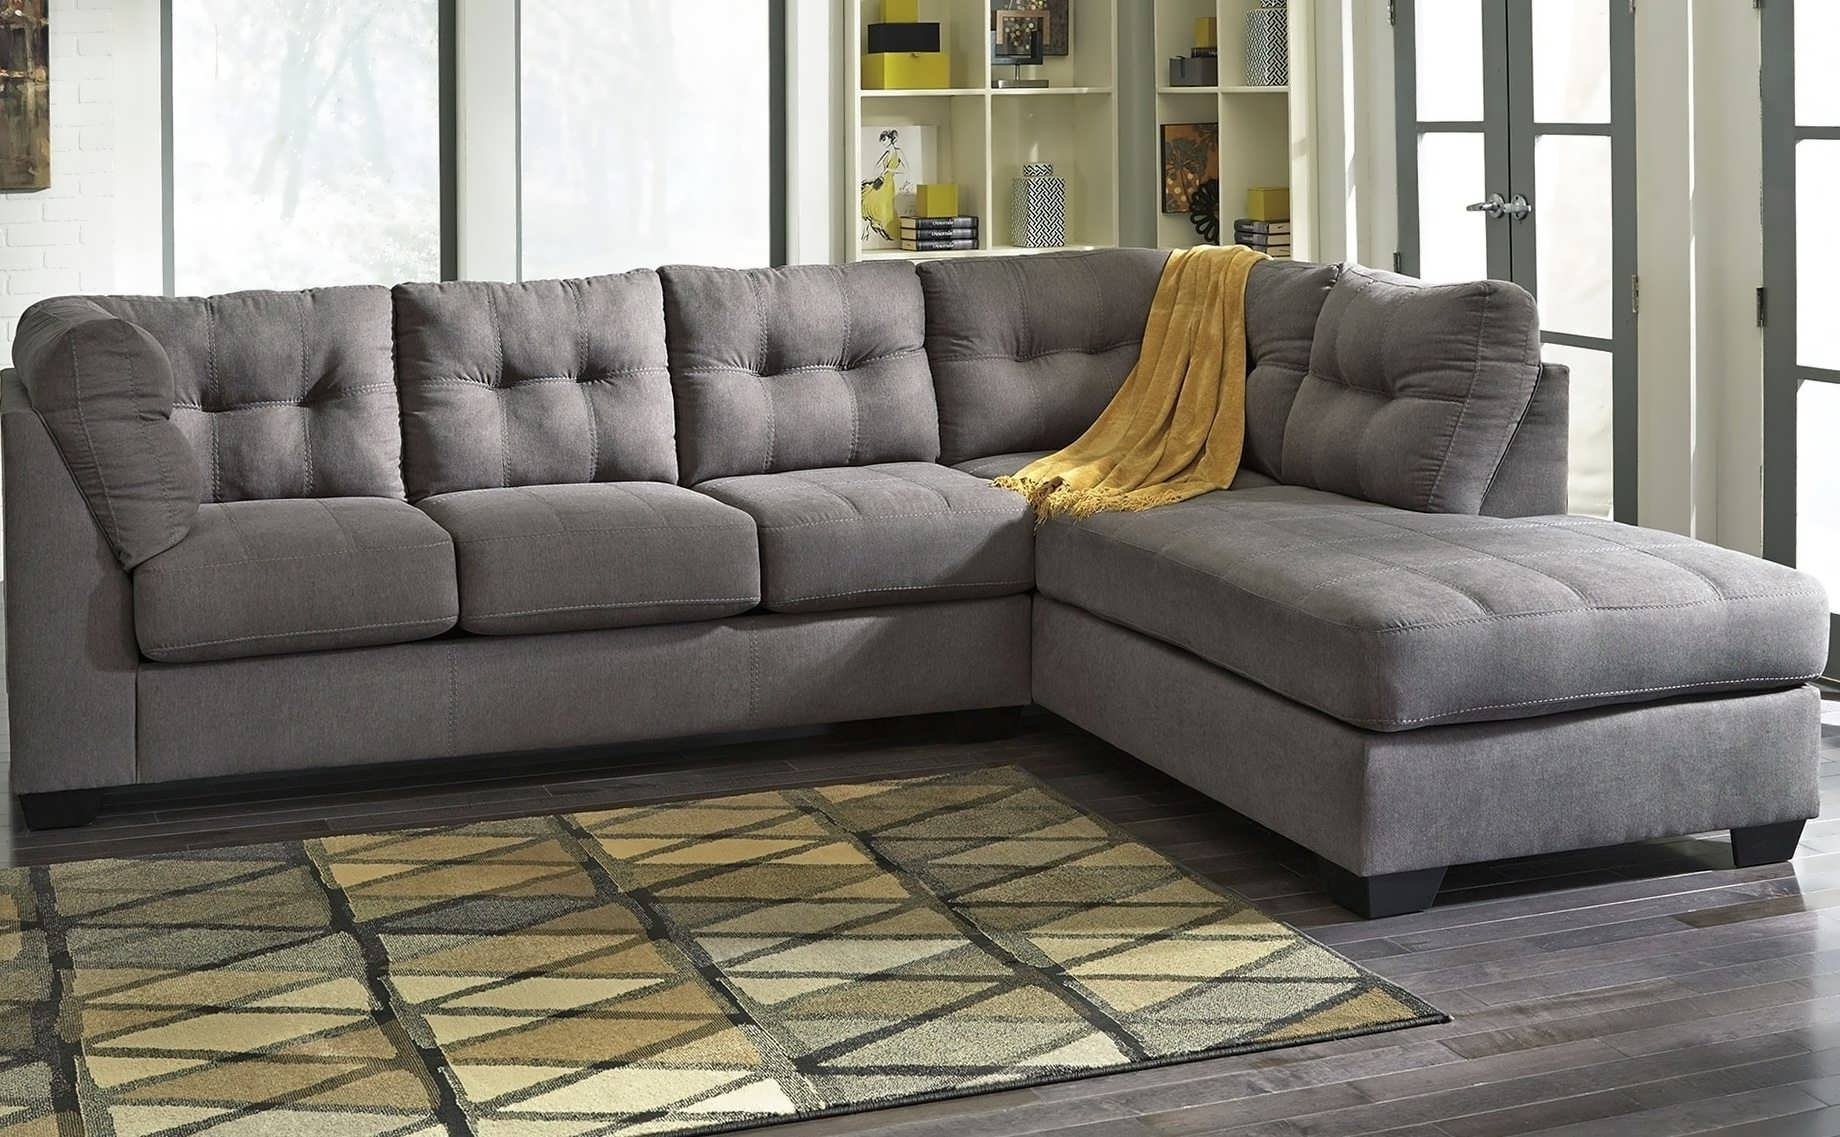 Sofa : Grey Sectional With Chaise Oversized Sectional Sofa White In Current Grey Sectional Sofas With Chaise (View 5 of 15)